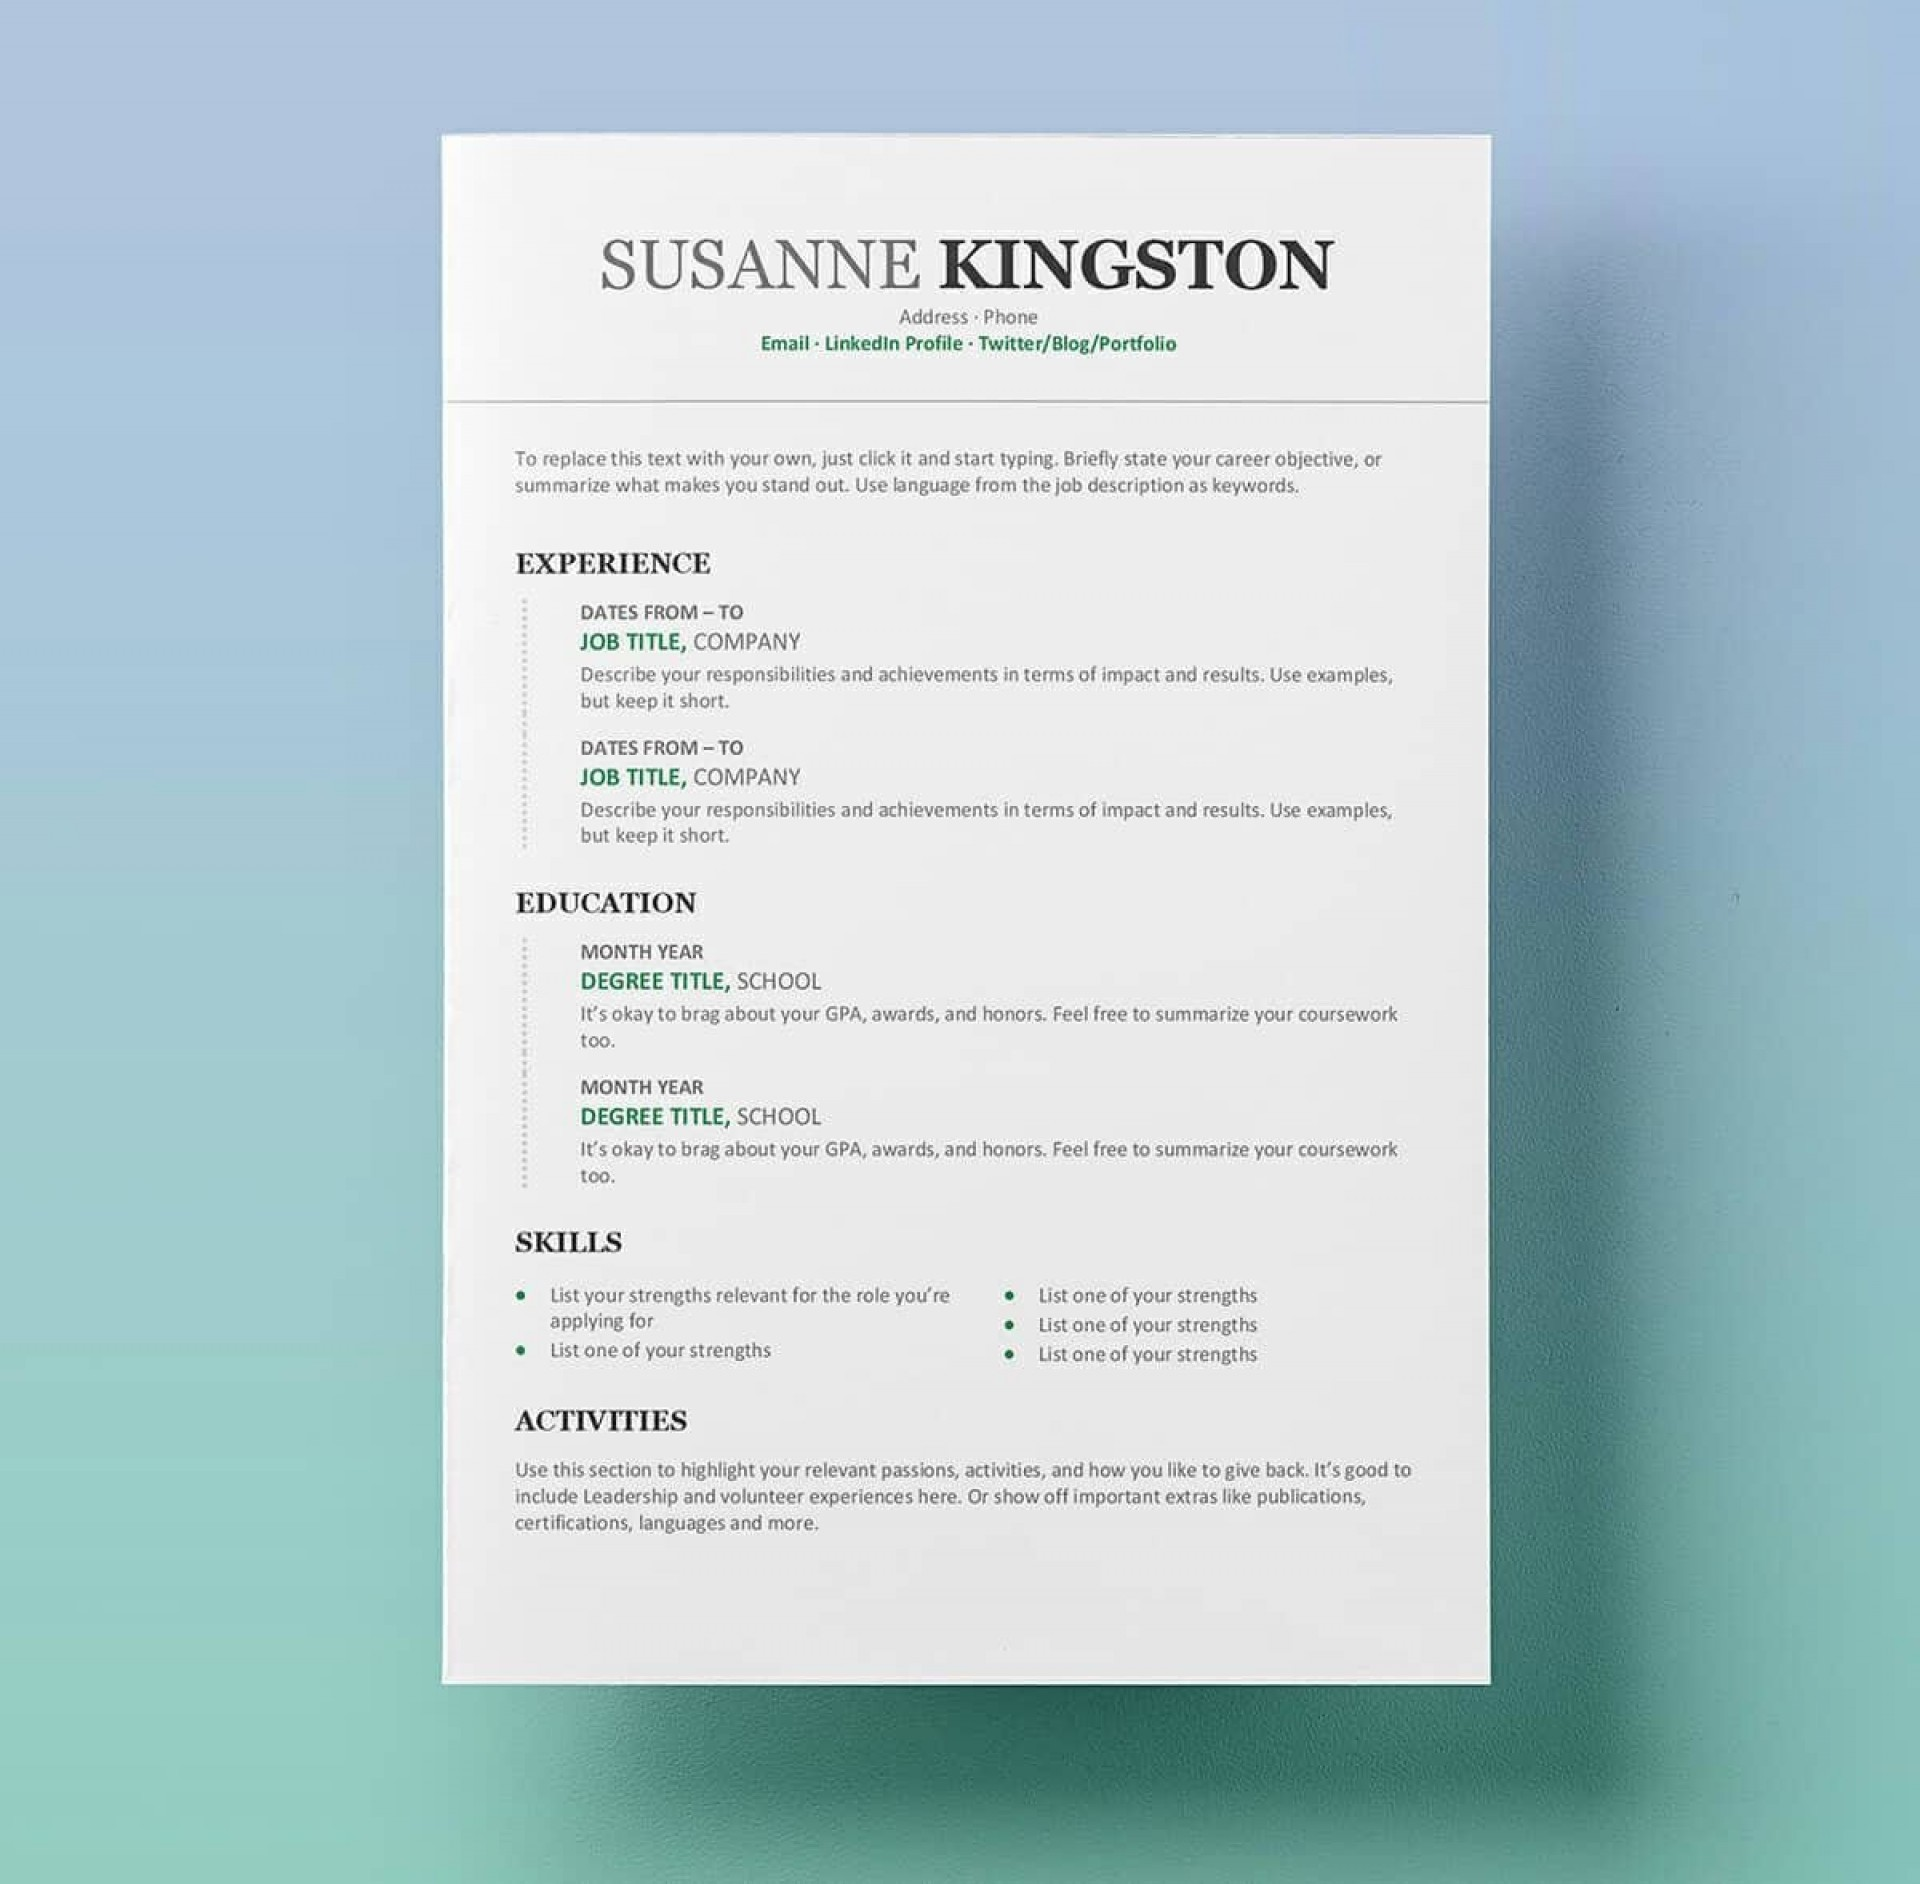 007 Frightening Resume Template Free Word Doc Picture  Cv Download Document For Student1920